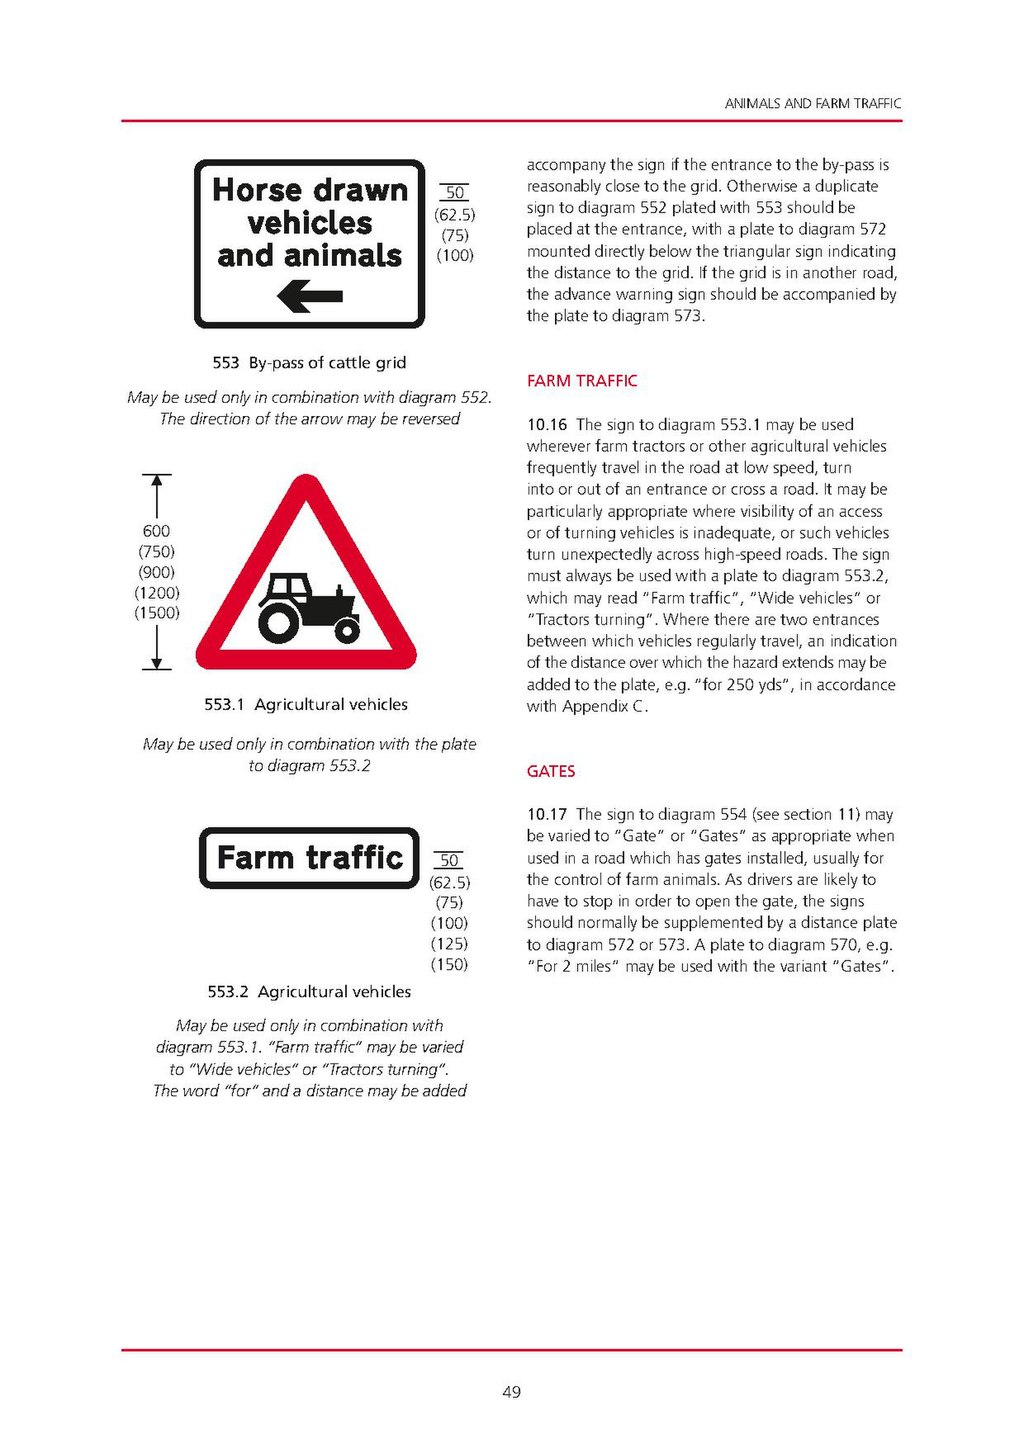 Pageuk traffic signs manual chapter 4 warning signs 2013pdf pageuk traffic signs manual chapter 4 warning signs 2013pdf50 wikisource the free online library buycottarizona Choice Image